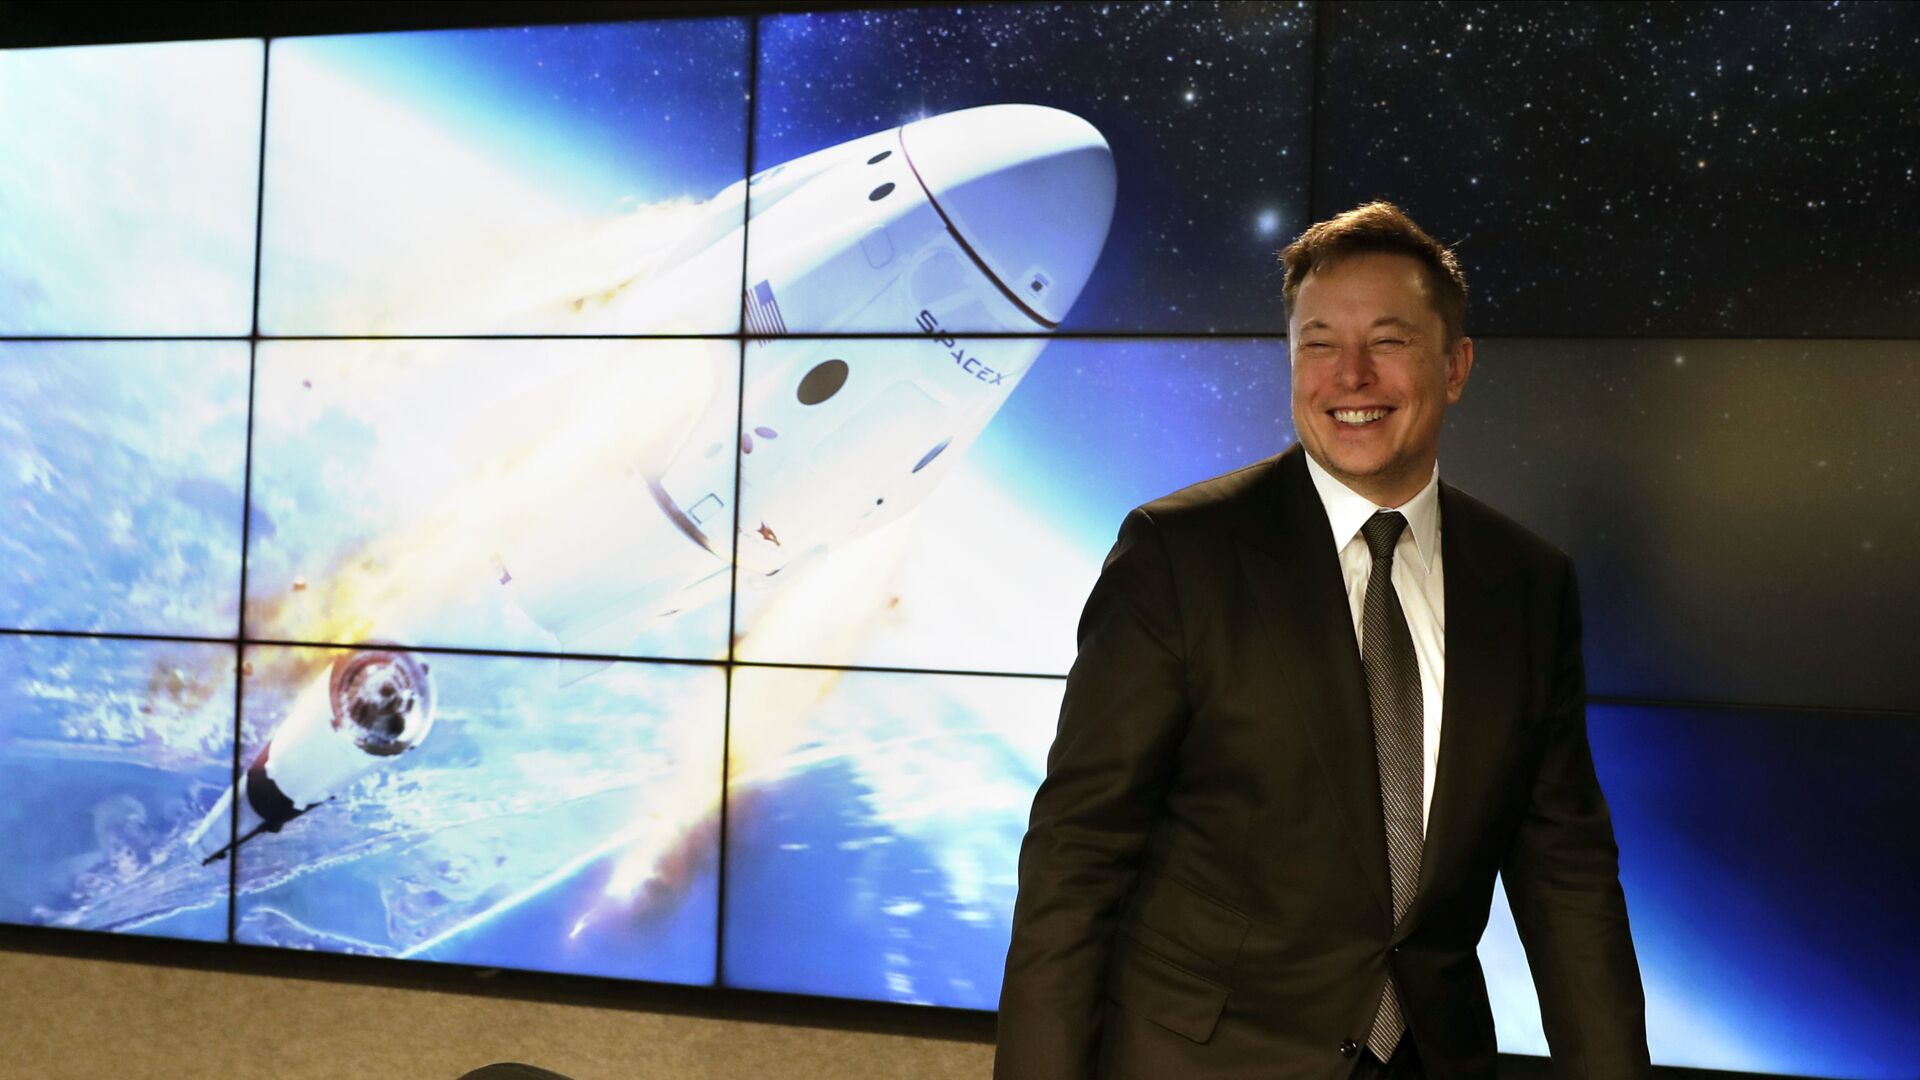 Elon Musk, founder, CEO, and chief engineer/designer of SpaceX speaks during a news conference after a Falcon 9 SpaceX rocket test flight to demonstrate the capsule's emergency escape system at the Kennedy Space Center in Cape Canaveral, Fla., Sunday, Jan. 19, 2020 - Sputnik Italia, 1920, 17.04.2021